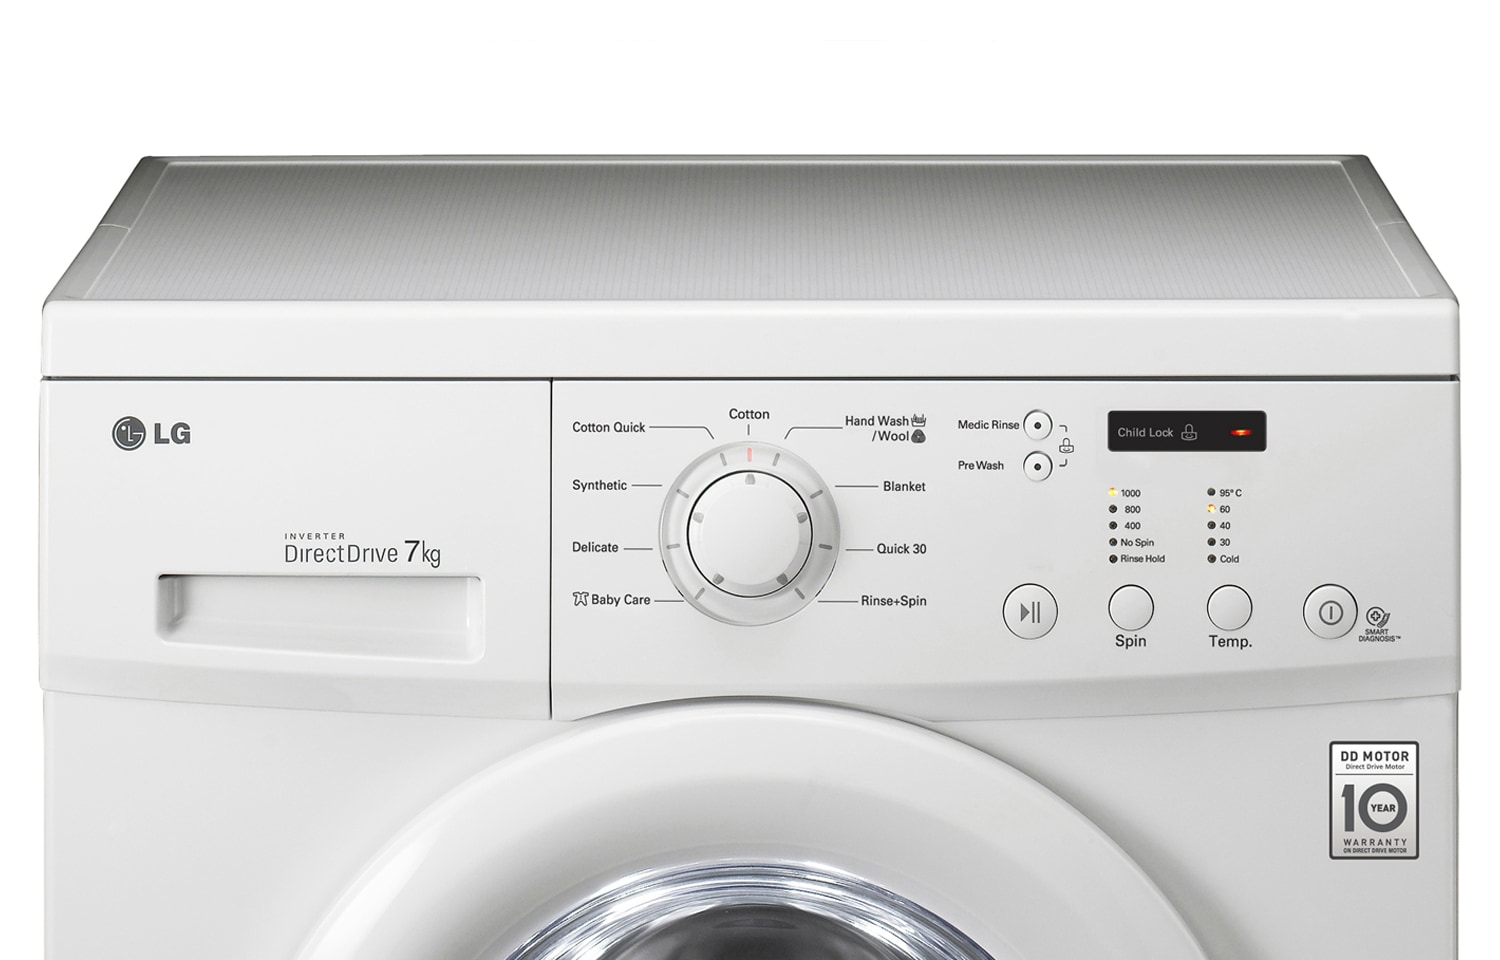 lg 7kg 6 motion direct drive front load washing machine lg malaysia. Black Bedroom Furniture Sets. Home Design Ideas